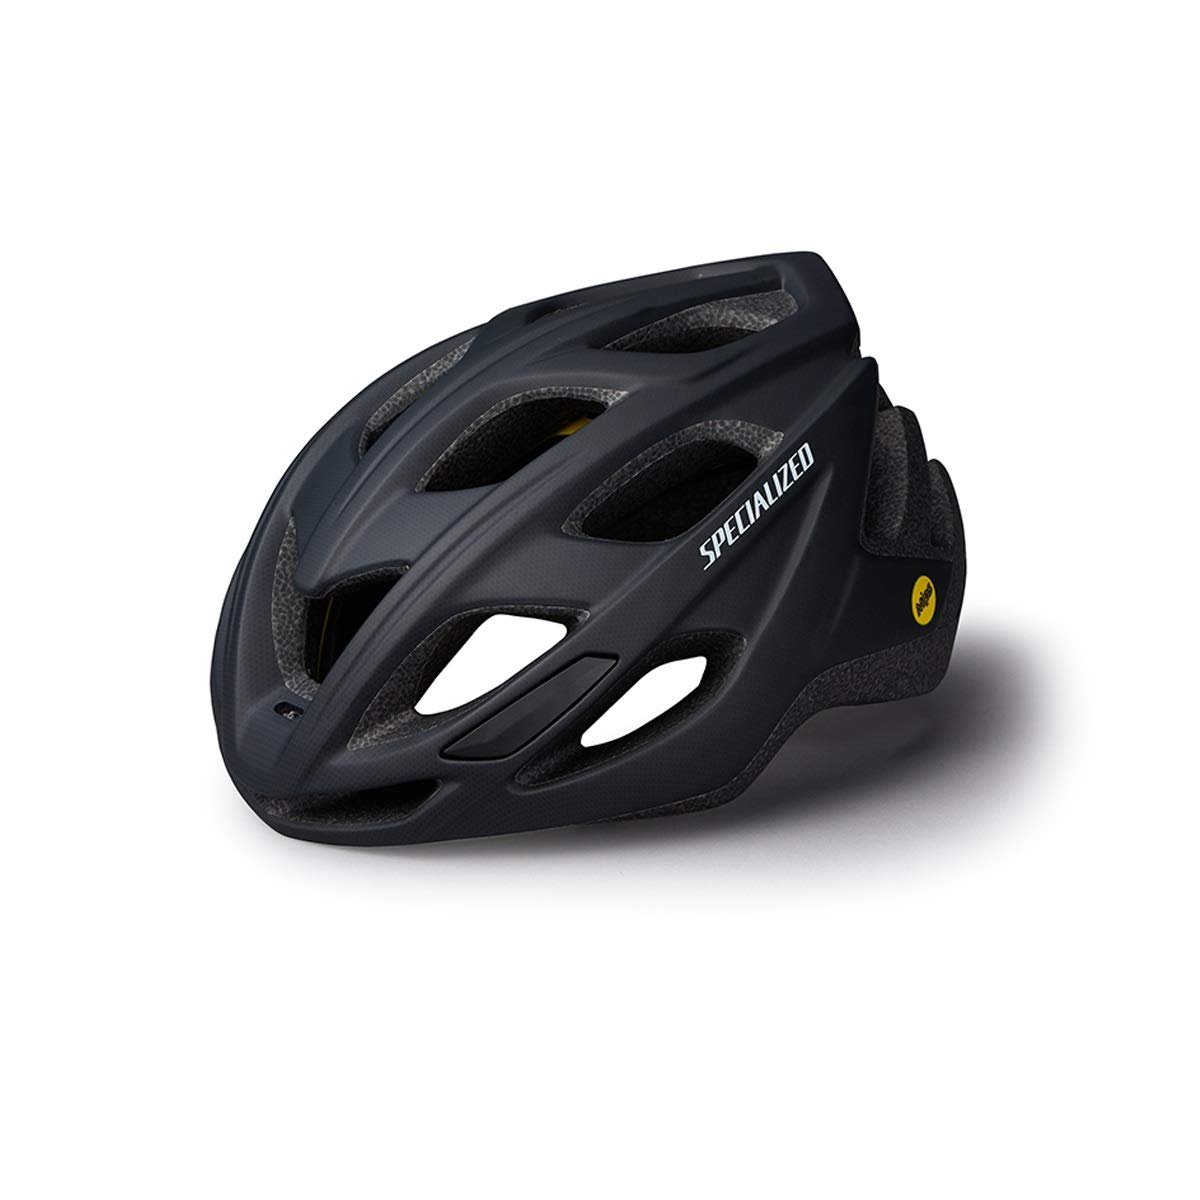 Muziwenju Casual Commuter Cycling Helmet,Bike Helmet with in-Molded Reinforcing Skeleton for Added Protection - Adult Size, Comfortable, Lightweight, Breathable Latest Style, Practical